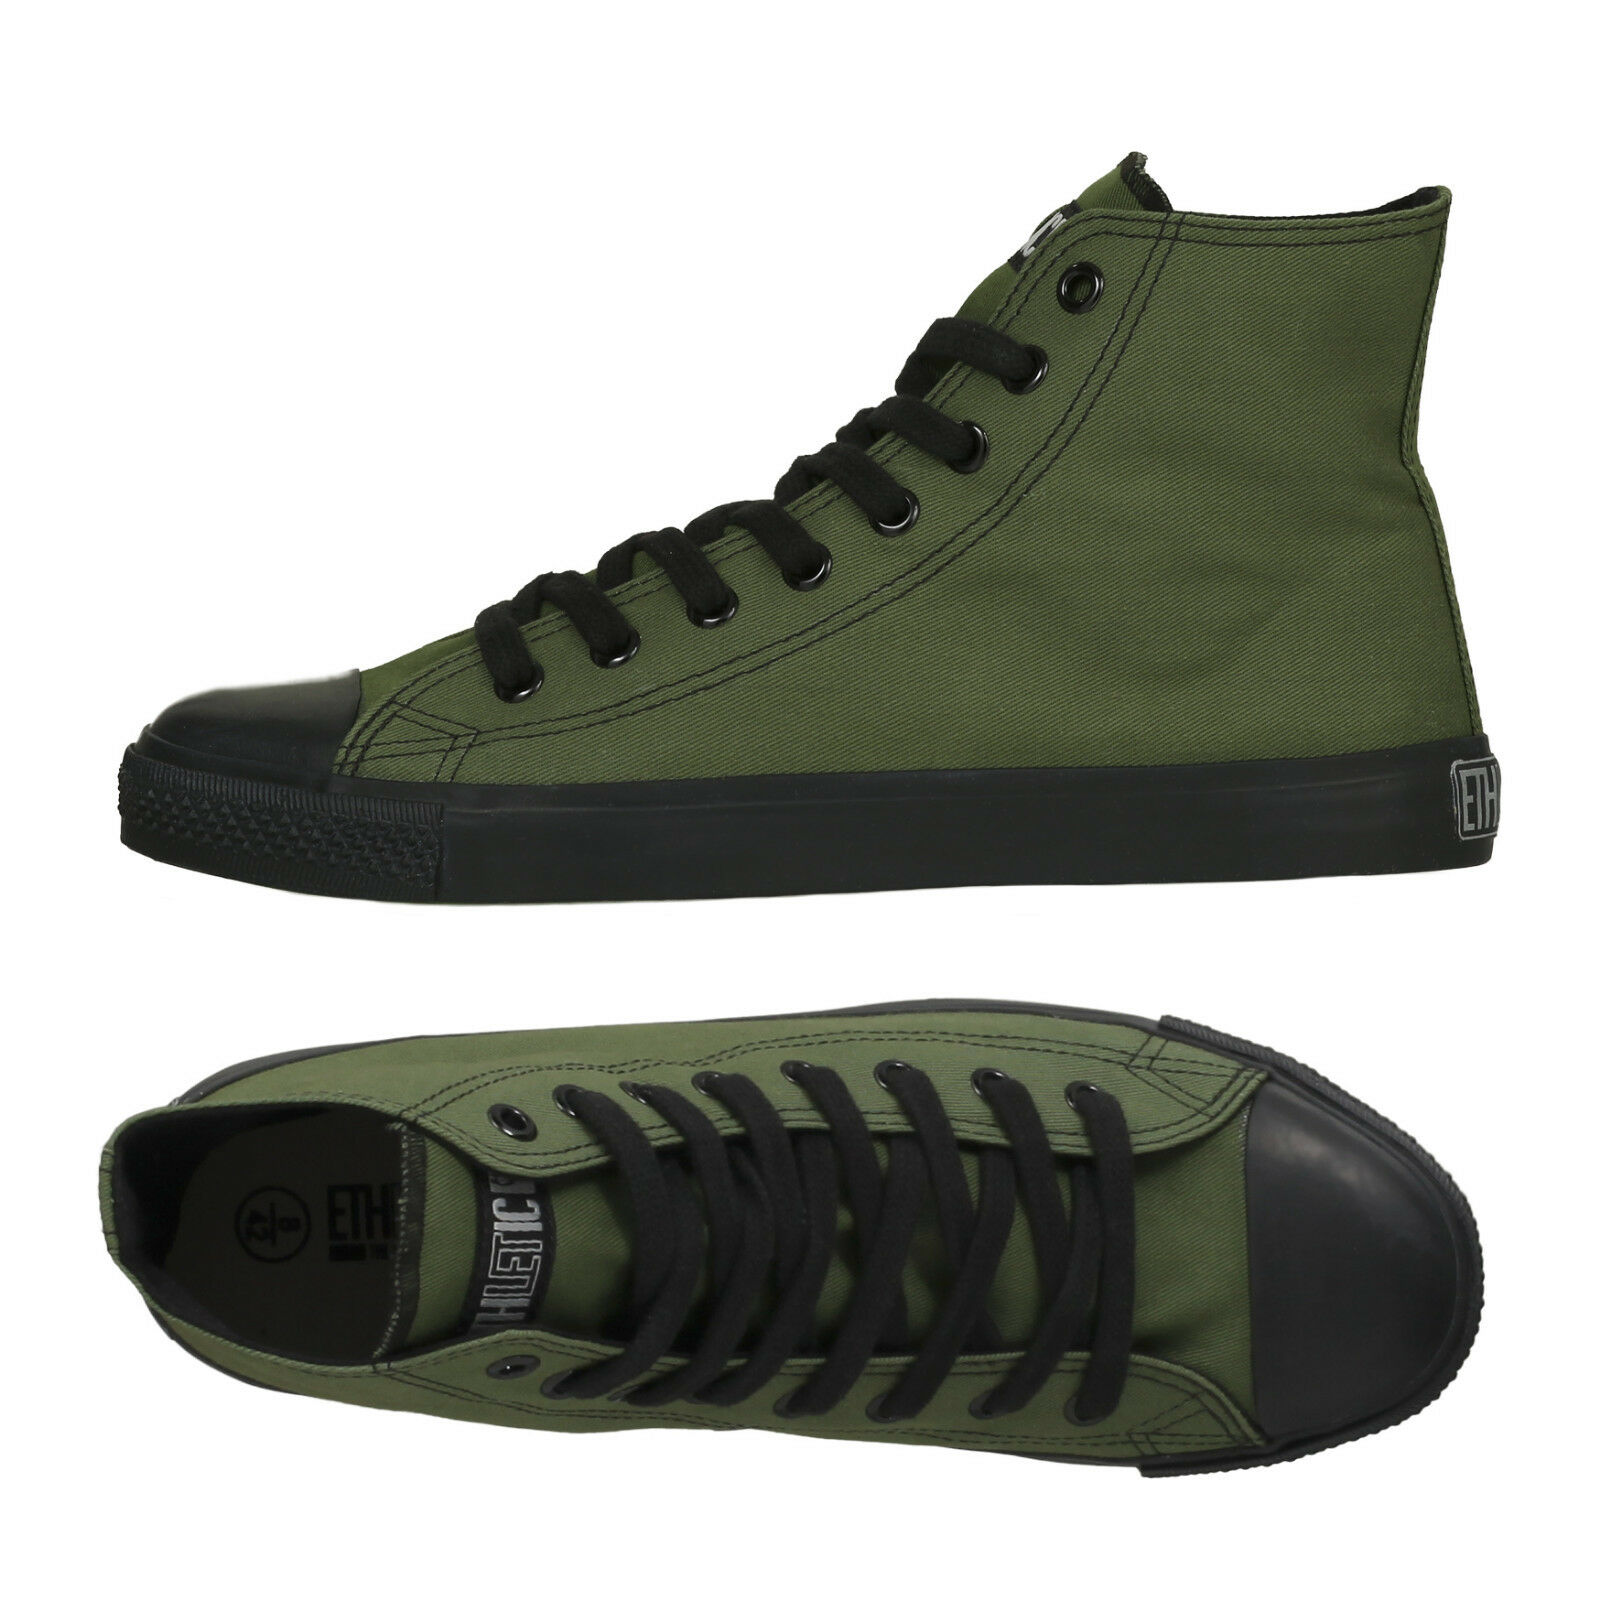 ff9b431cd0bcd Ethletic zapatos vegetariana bio Fairtrade cortos High Cut verde oliva negro  zapatillas de deporte